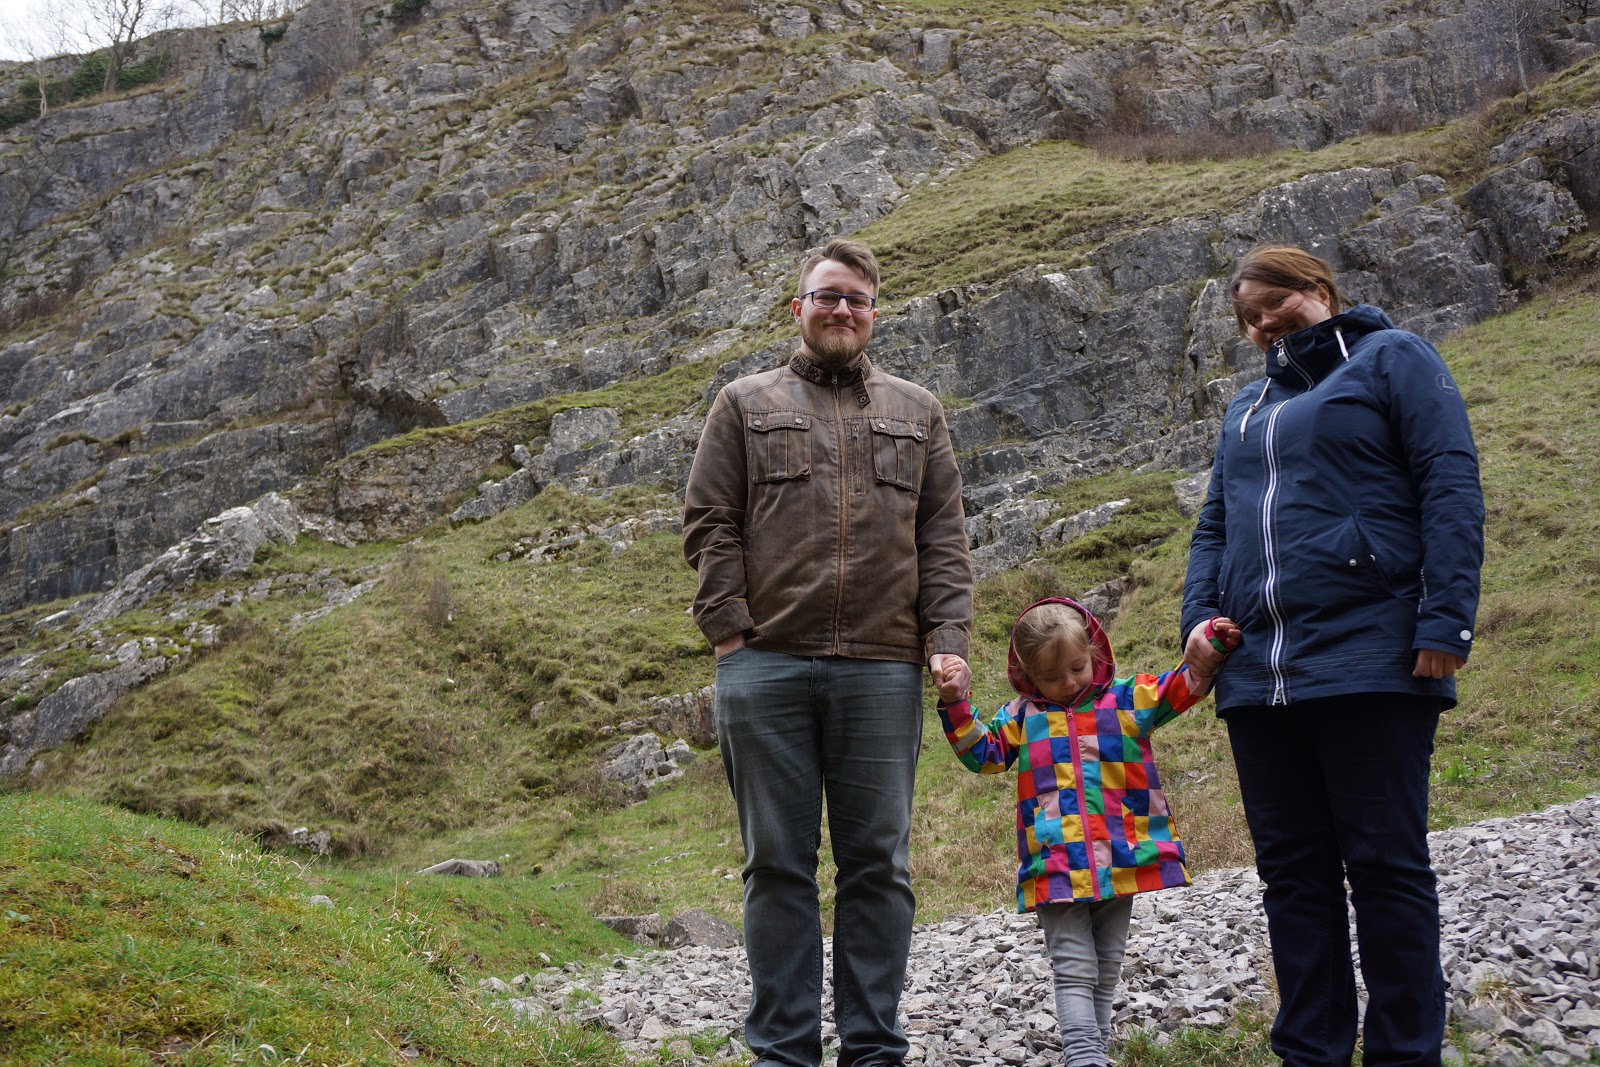 mum, dad and daughter at cheddar gorge are of outstanding natural beauty